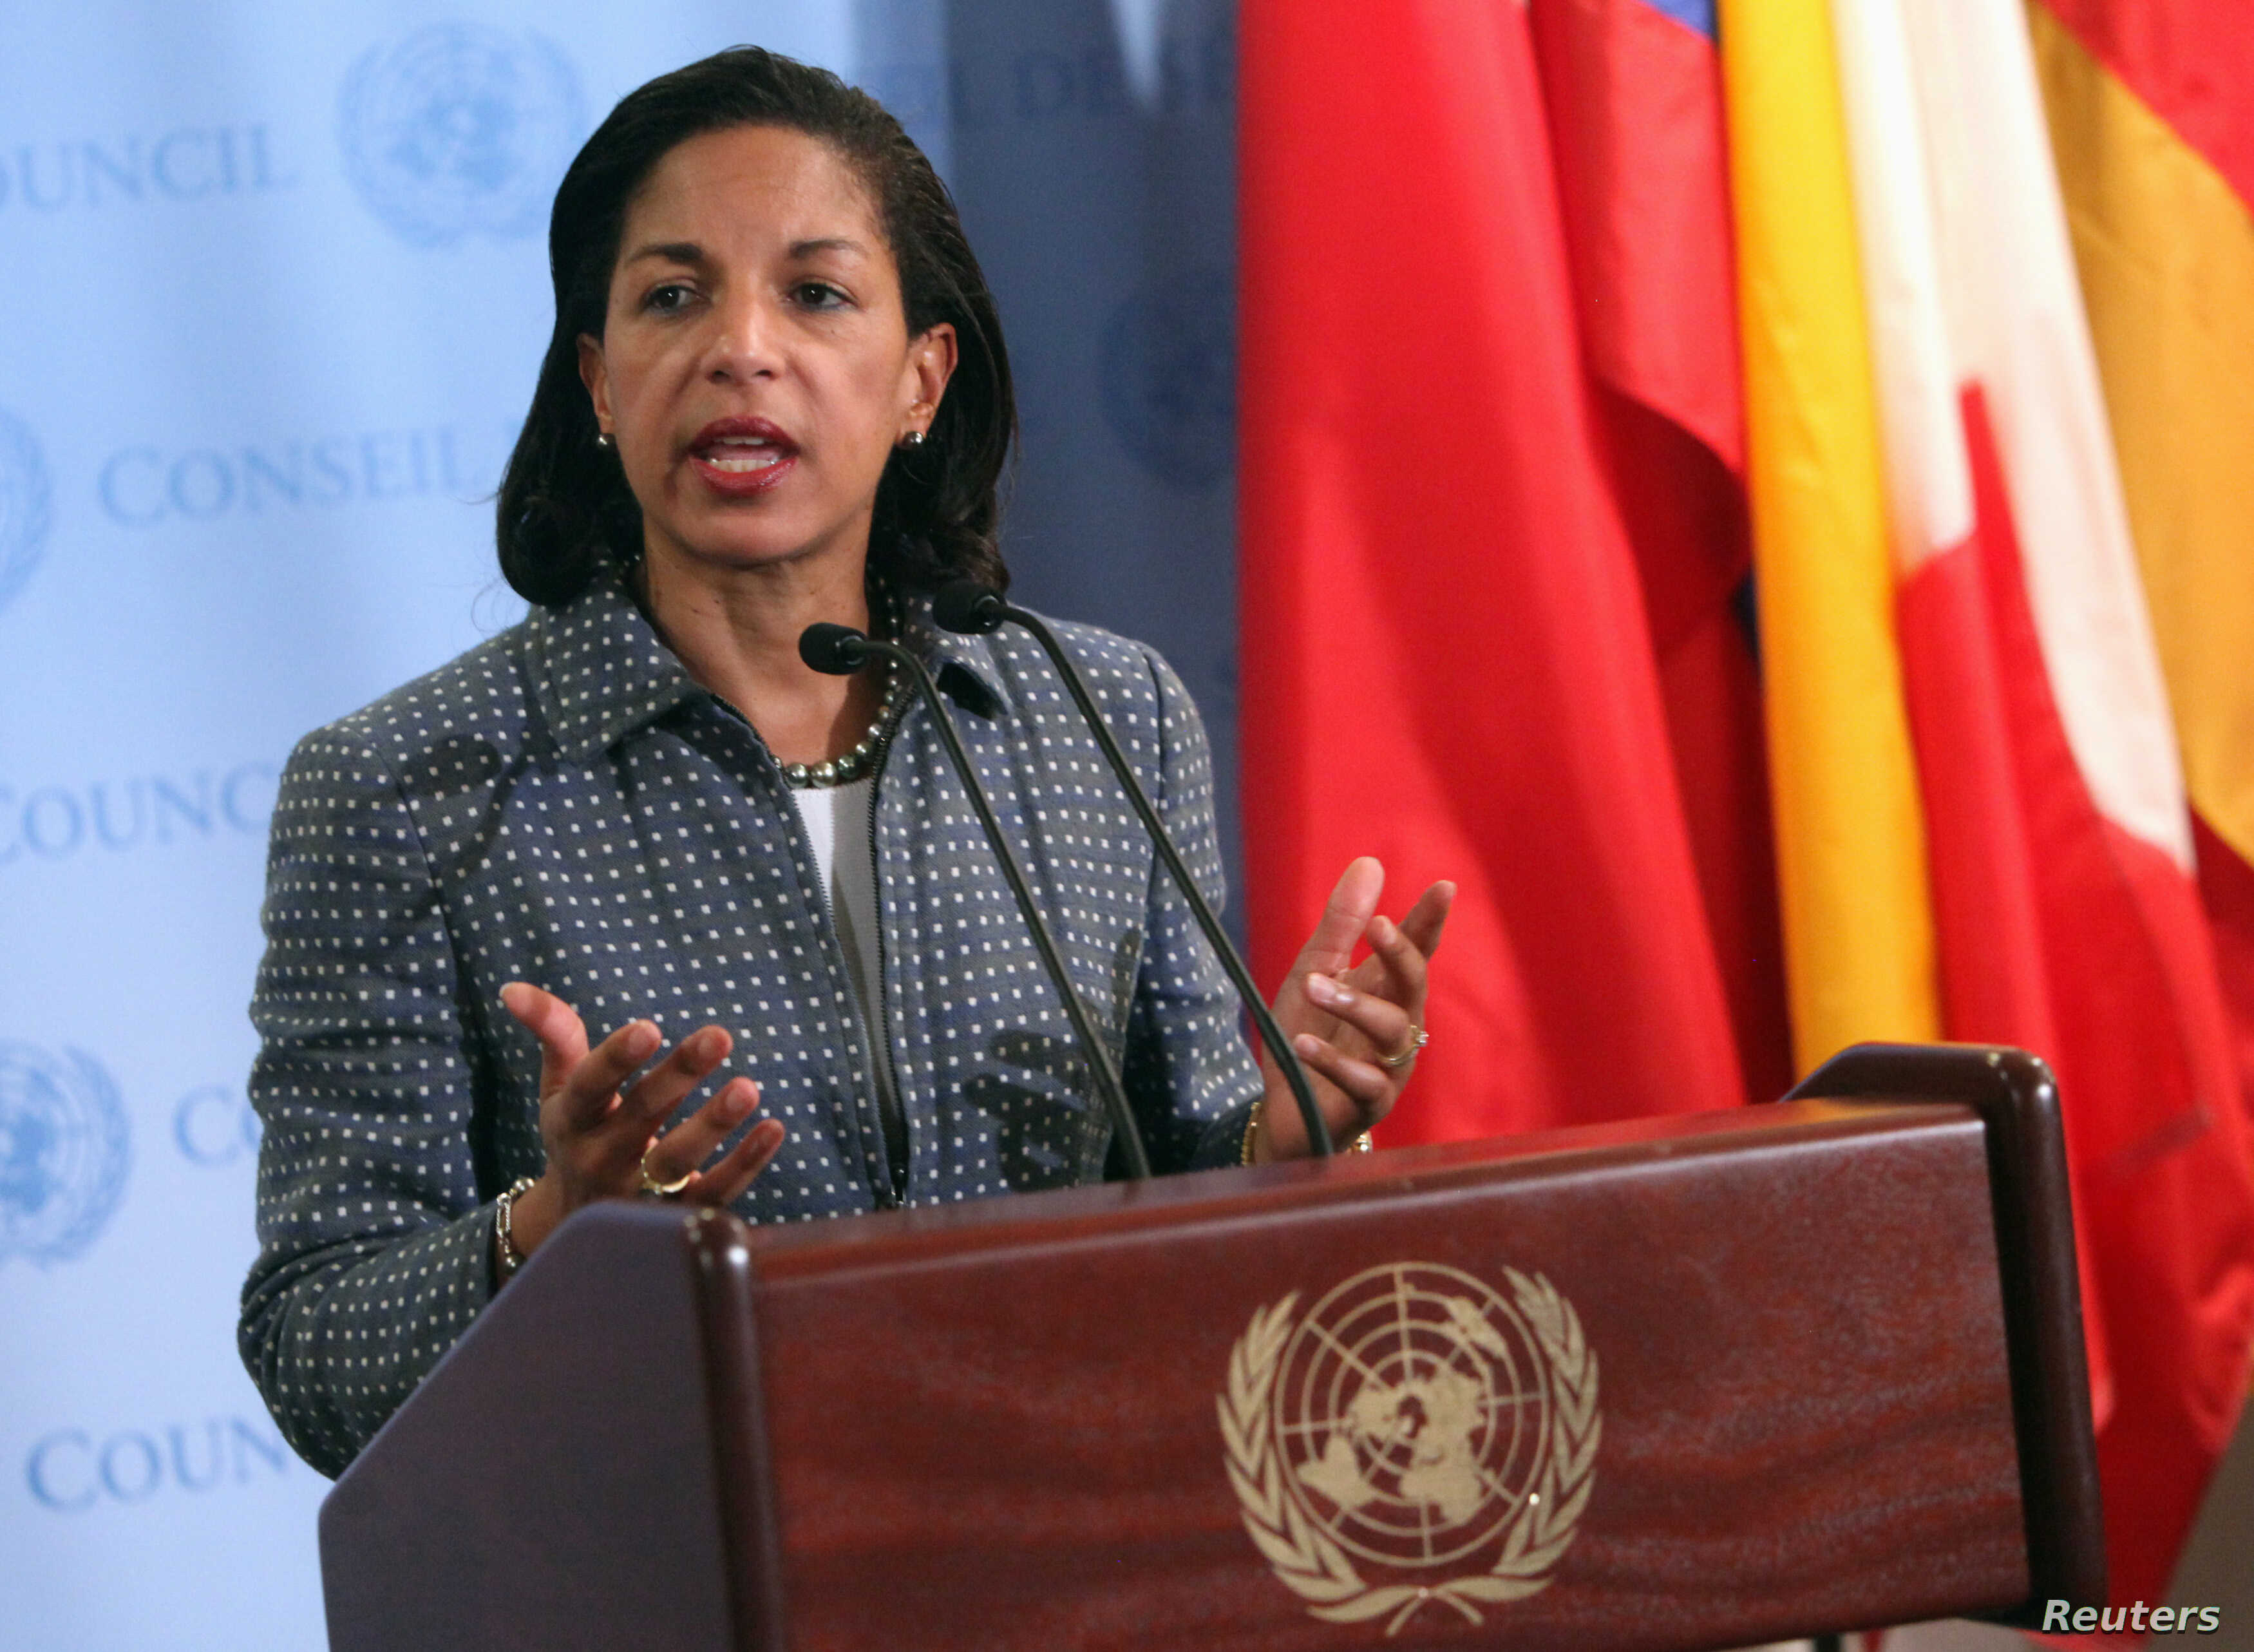 U.S. ambassador to the United Nations (U.N.) Susan Rice speaks with the media after Security Council consultations at U.N. headquarters in New York June 7, 2012. REUTERS/Allison Joyce (UNITED STATES - Tags: POLITICS)